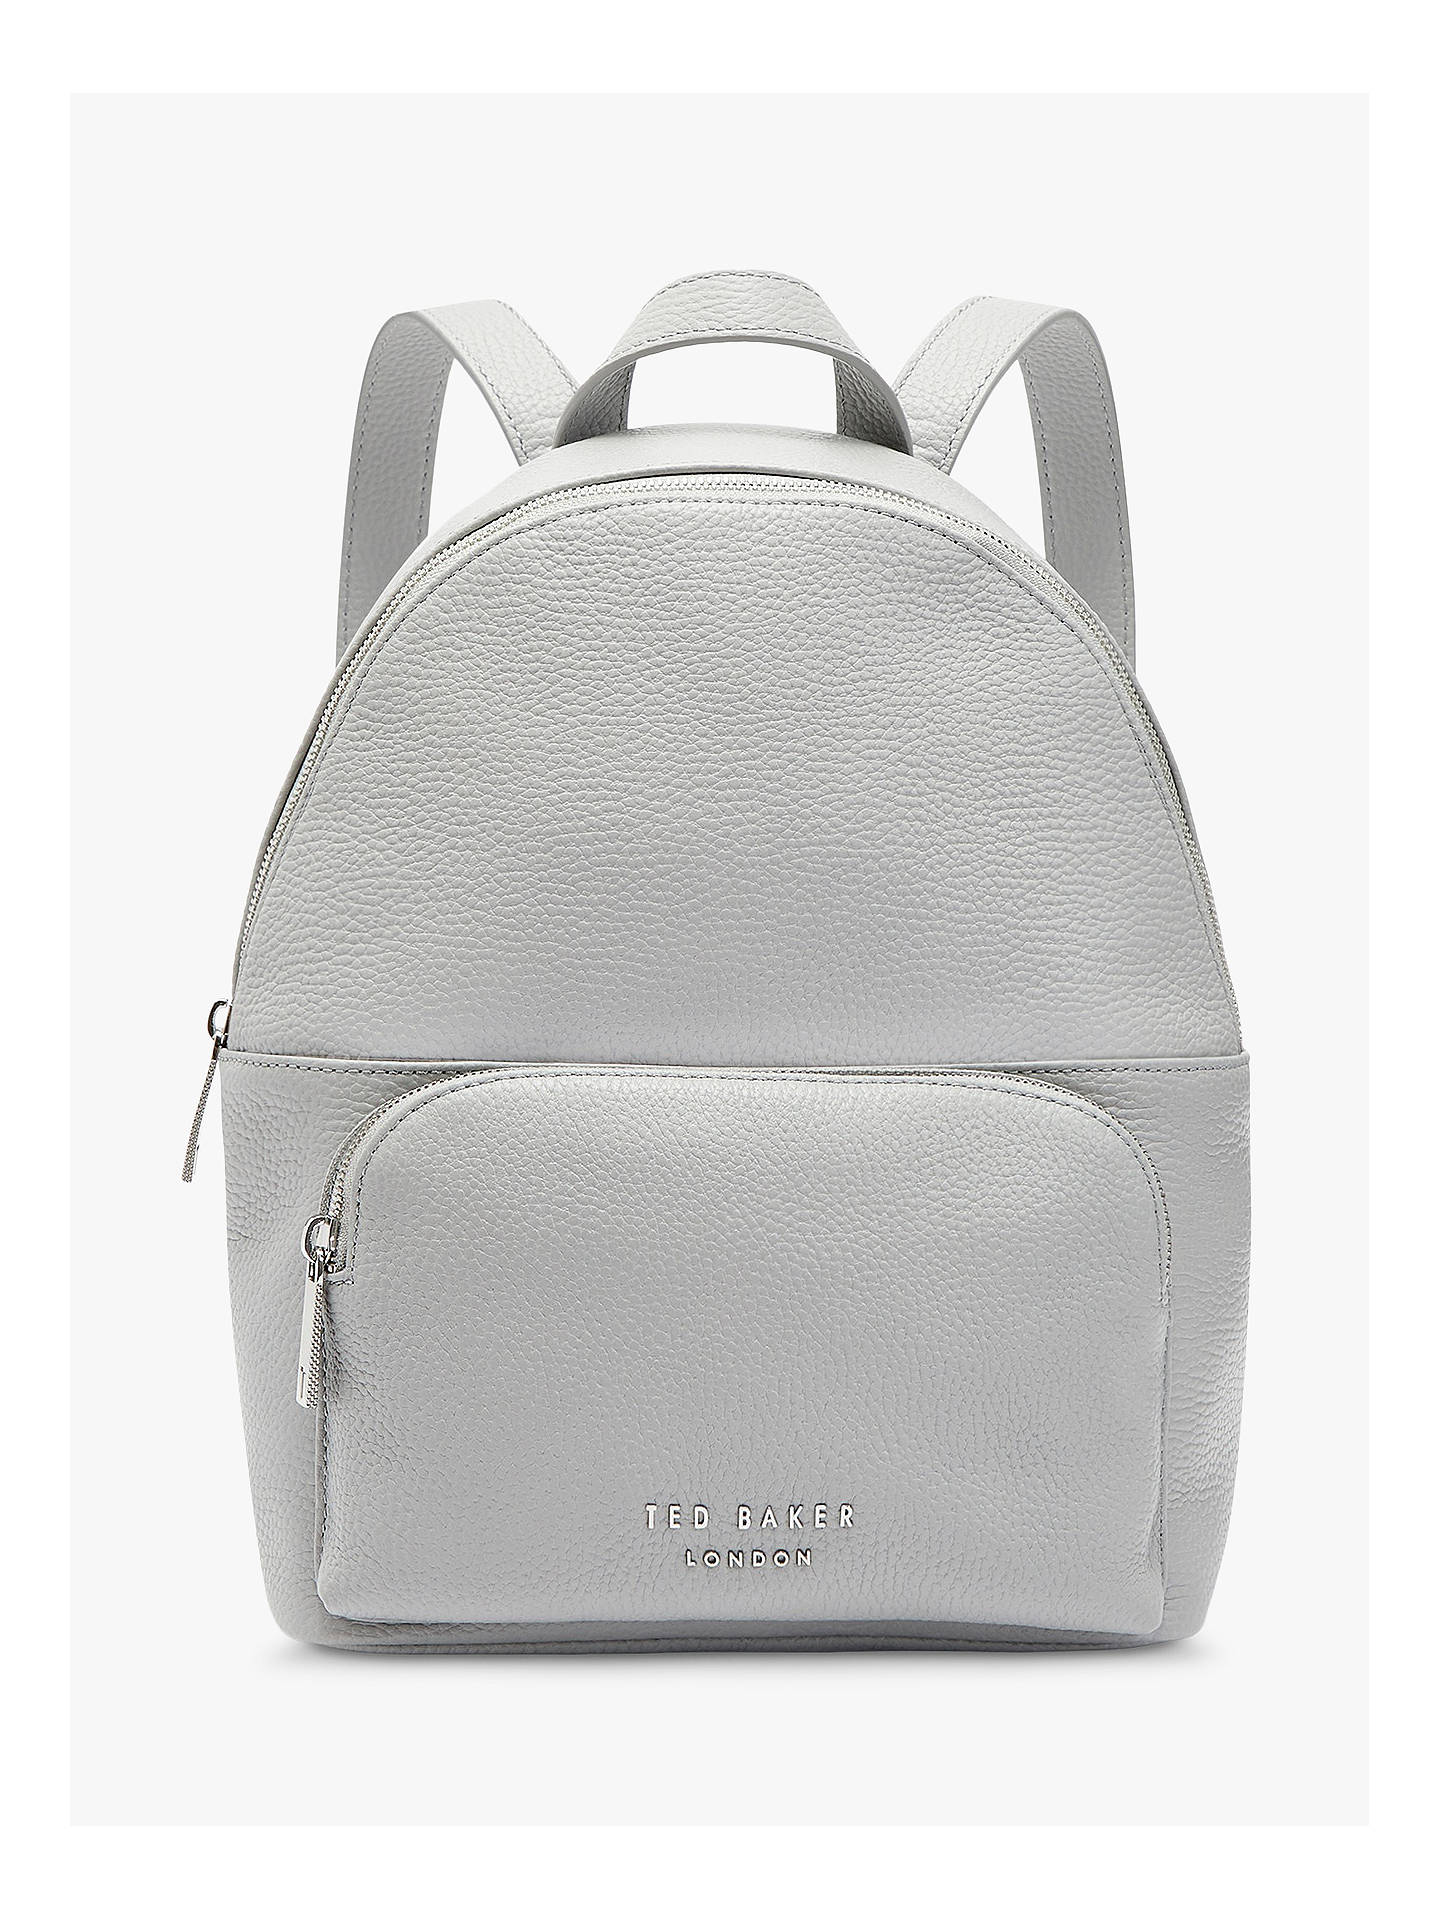 best supplier Clearance sale lovely luster Ted Baker Paloya Leather Backpack, Light Grey